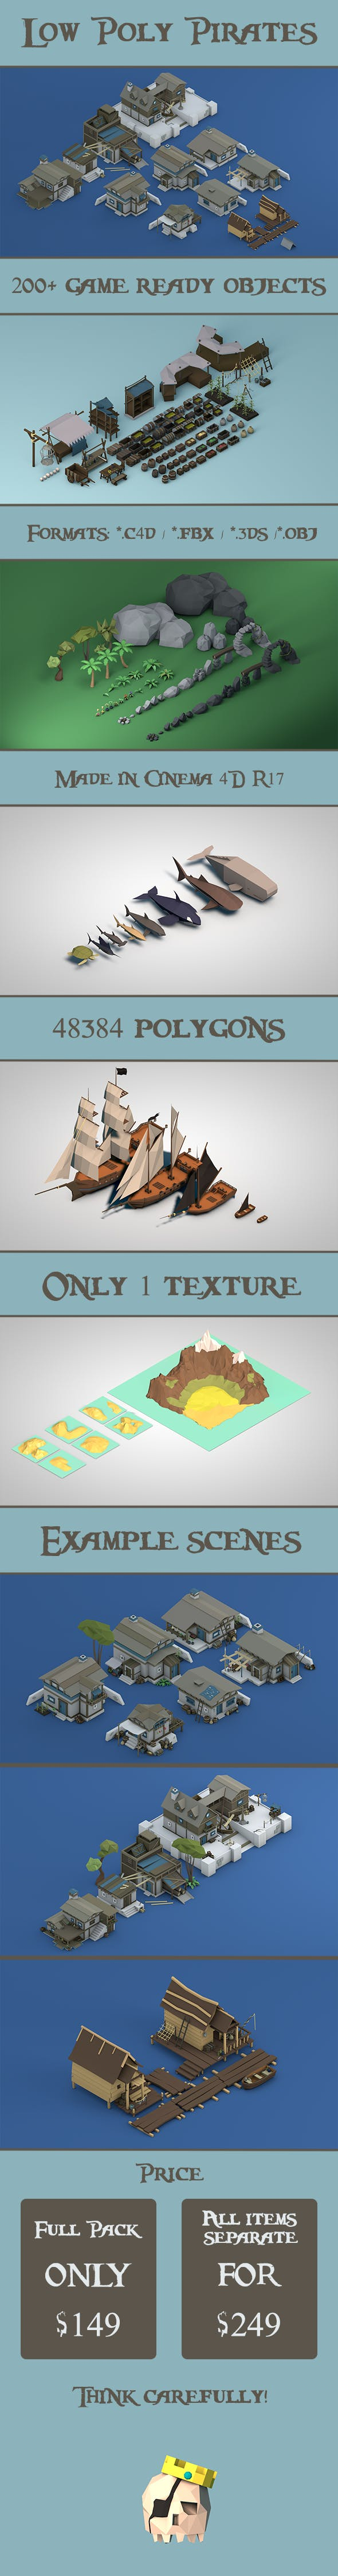 Low Poly Pirates - 3DOcean Item for Sale